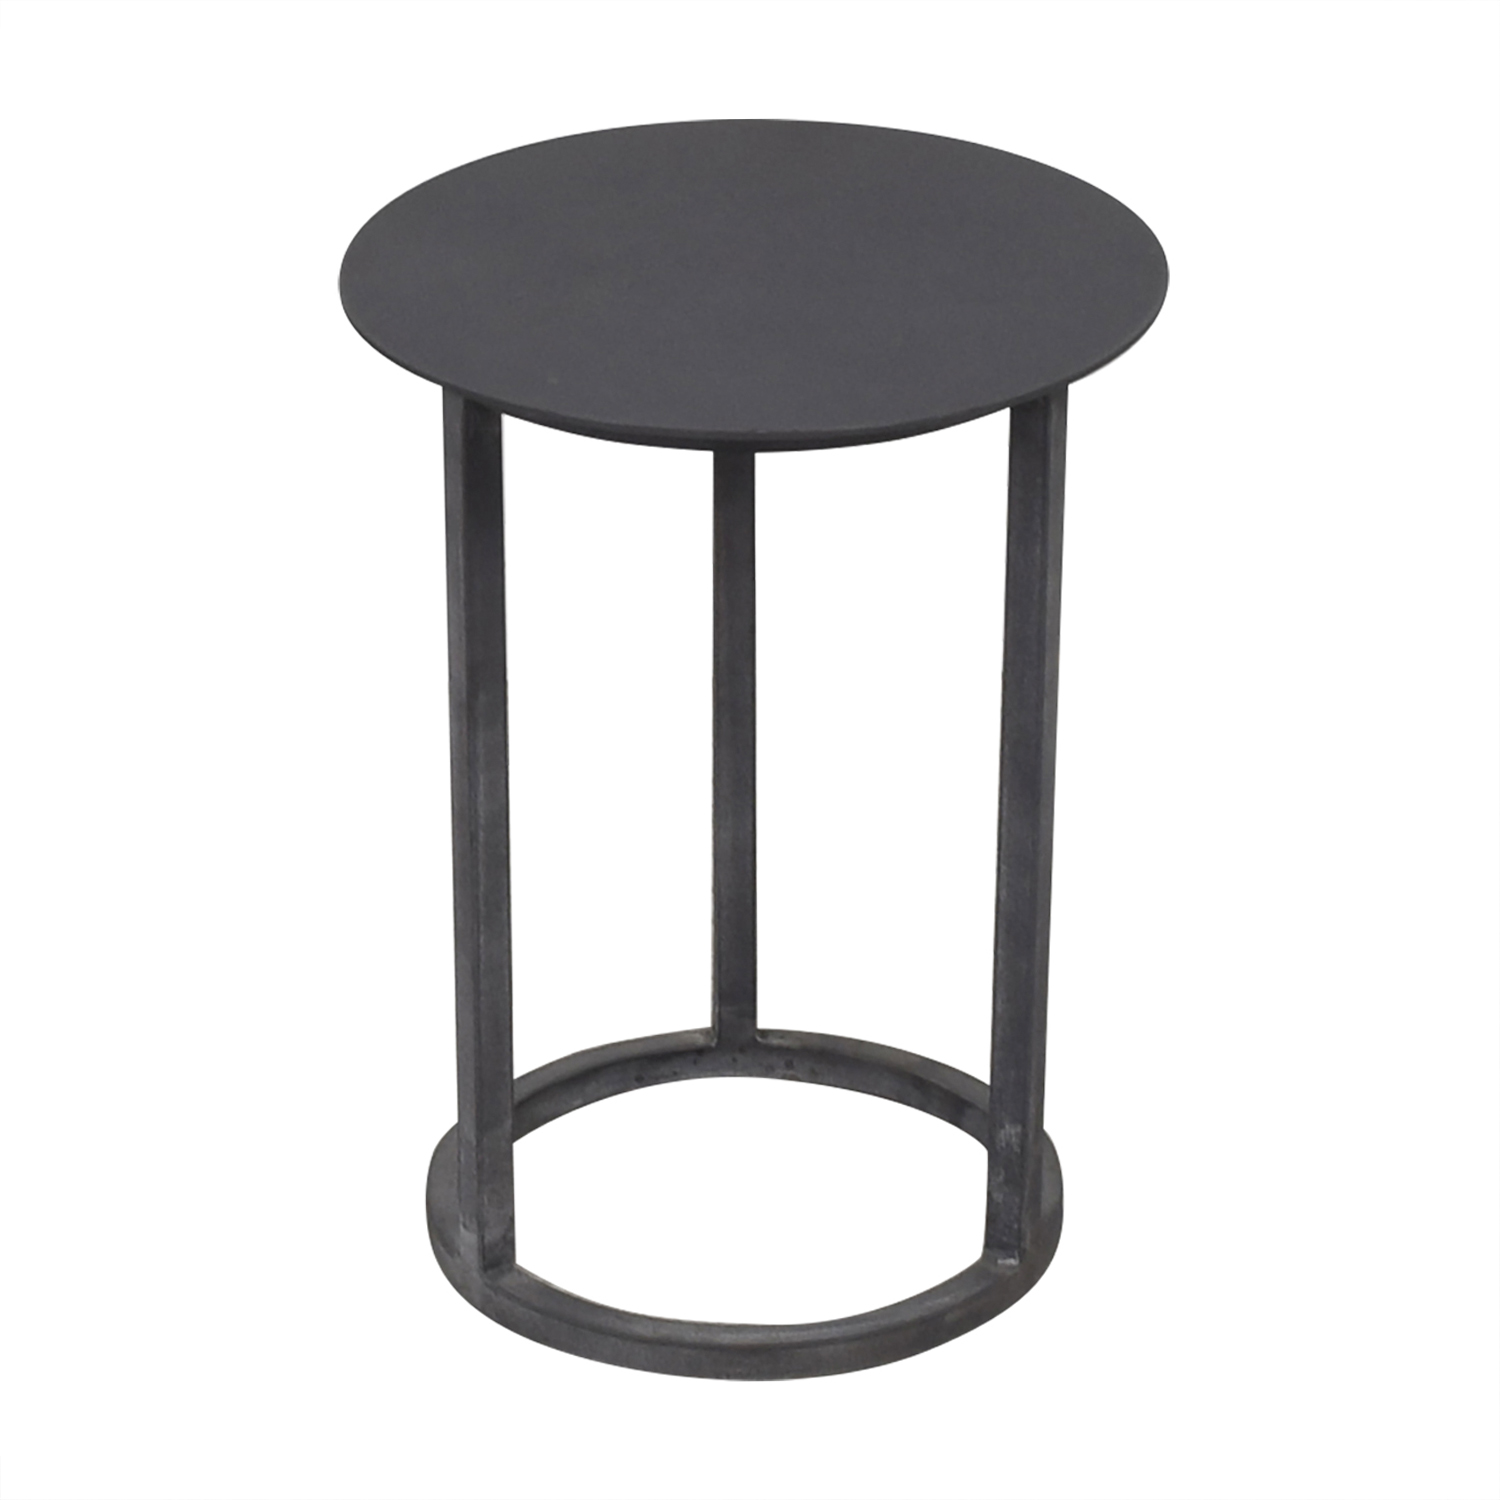 buy Restoration Hardware Mercer Round Side Table Restoration Hardware